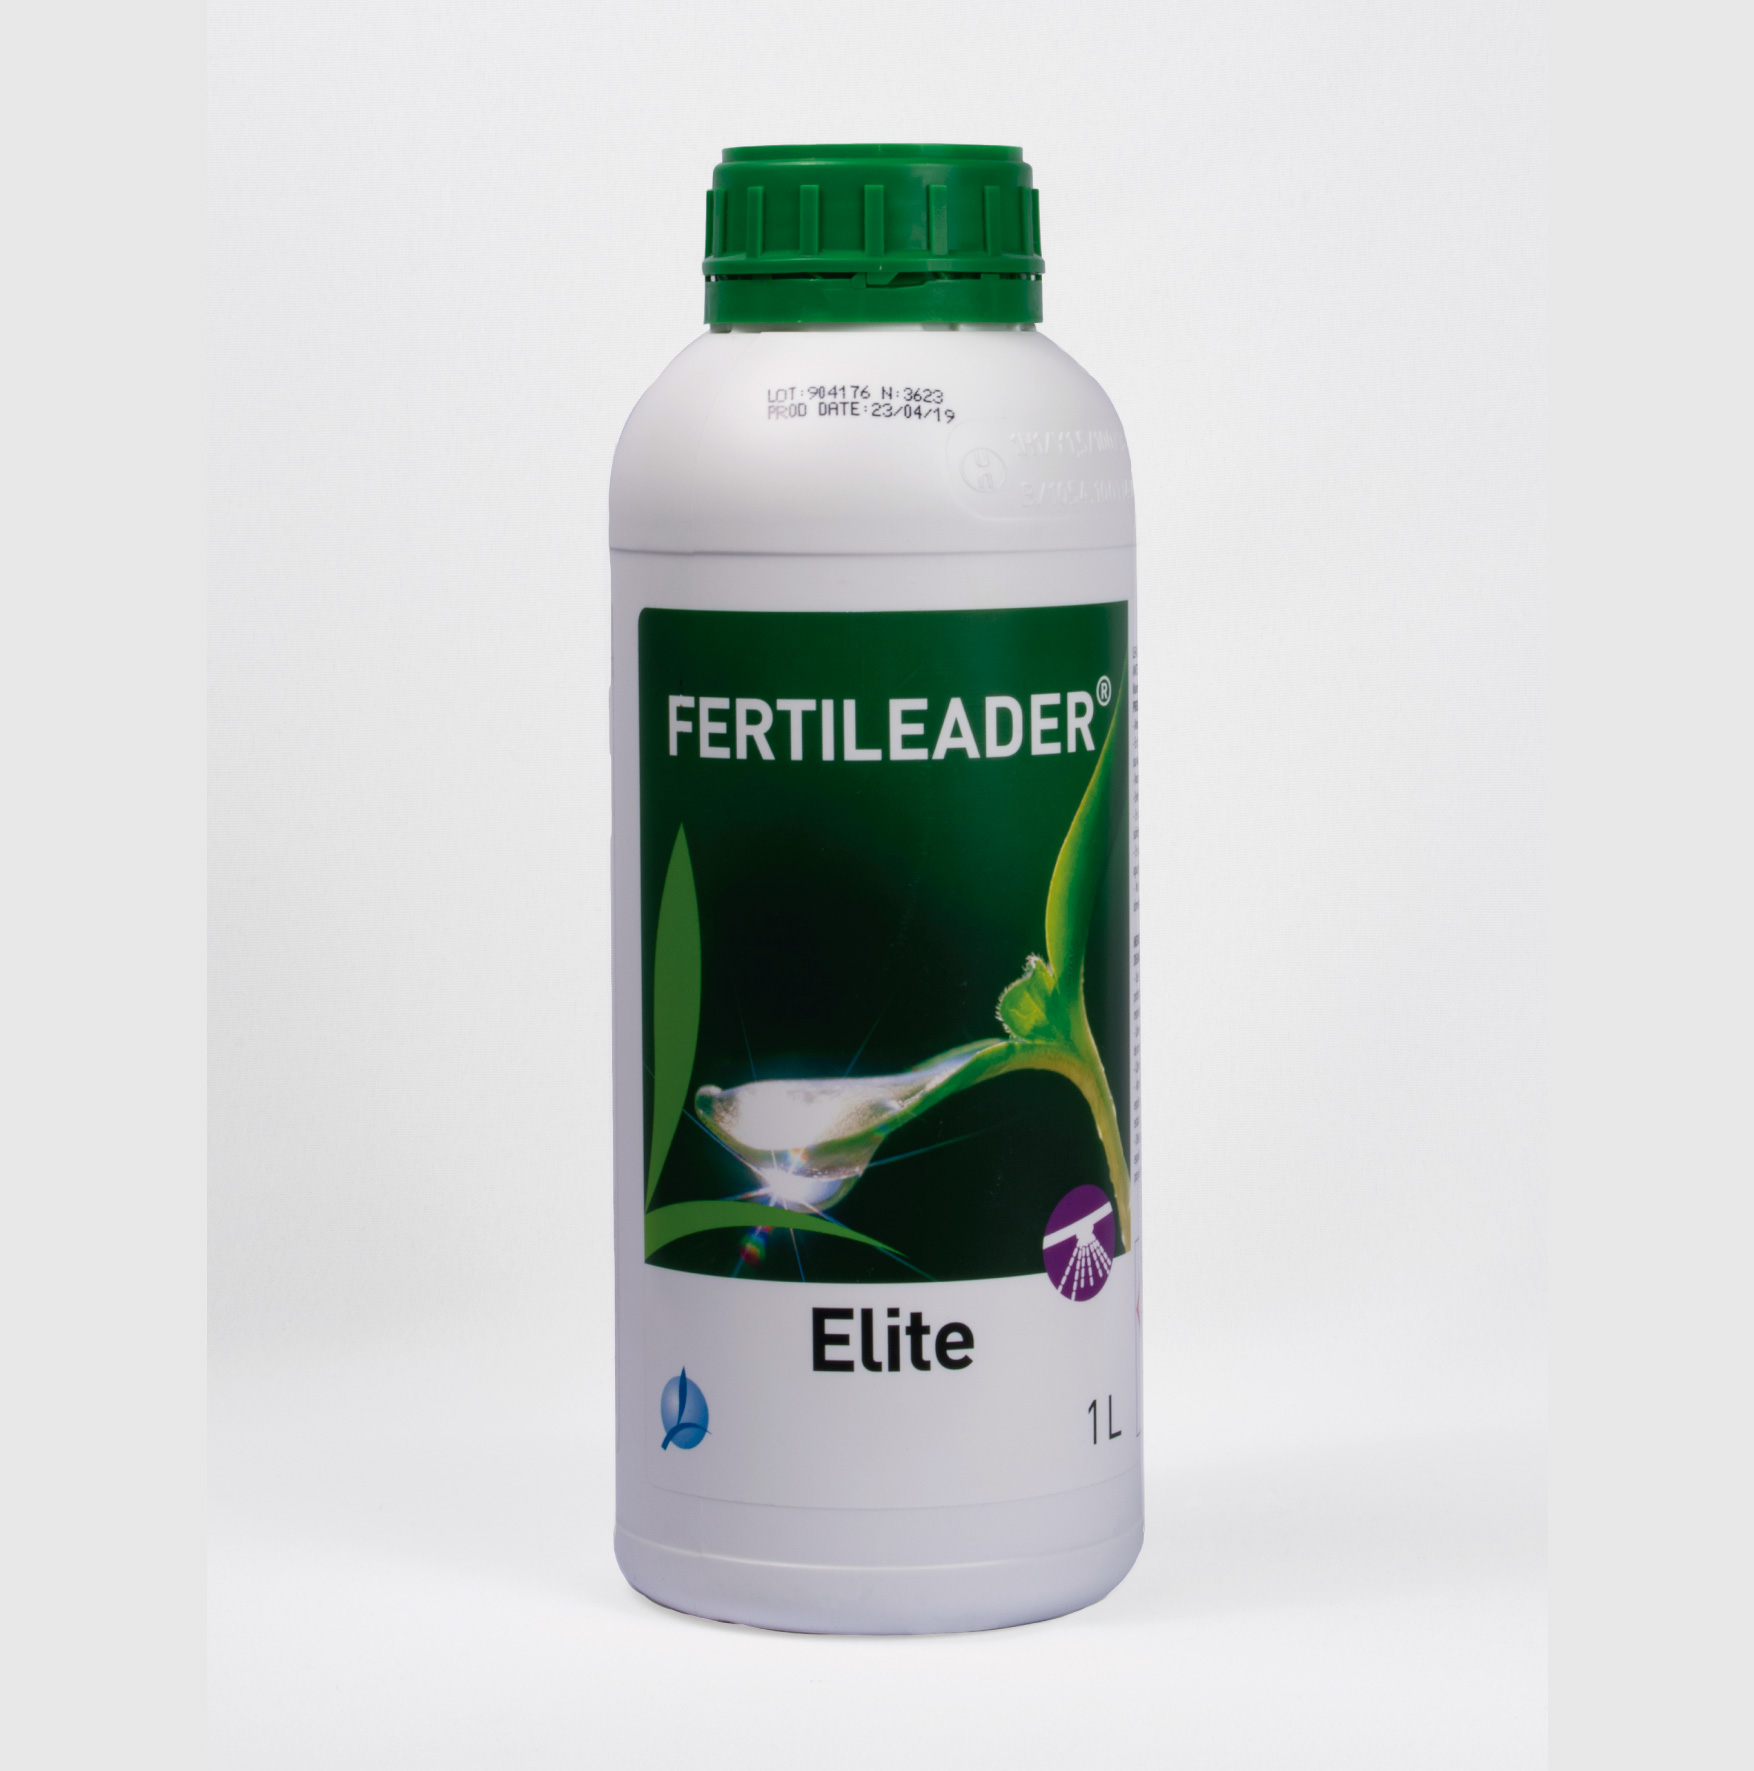 FERTILEADER ELITE X 1 Lt